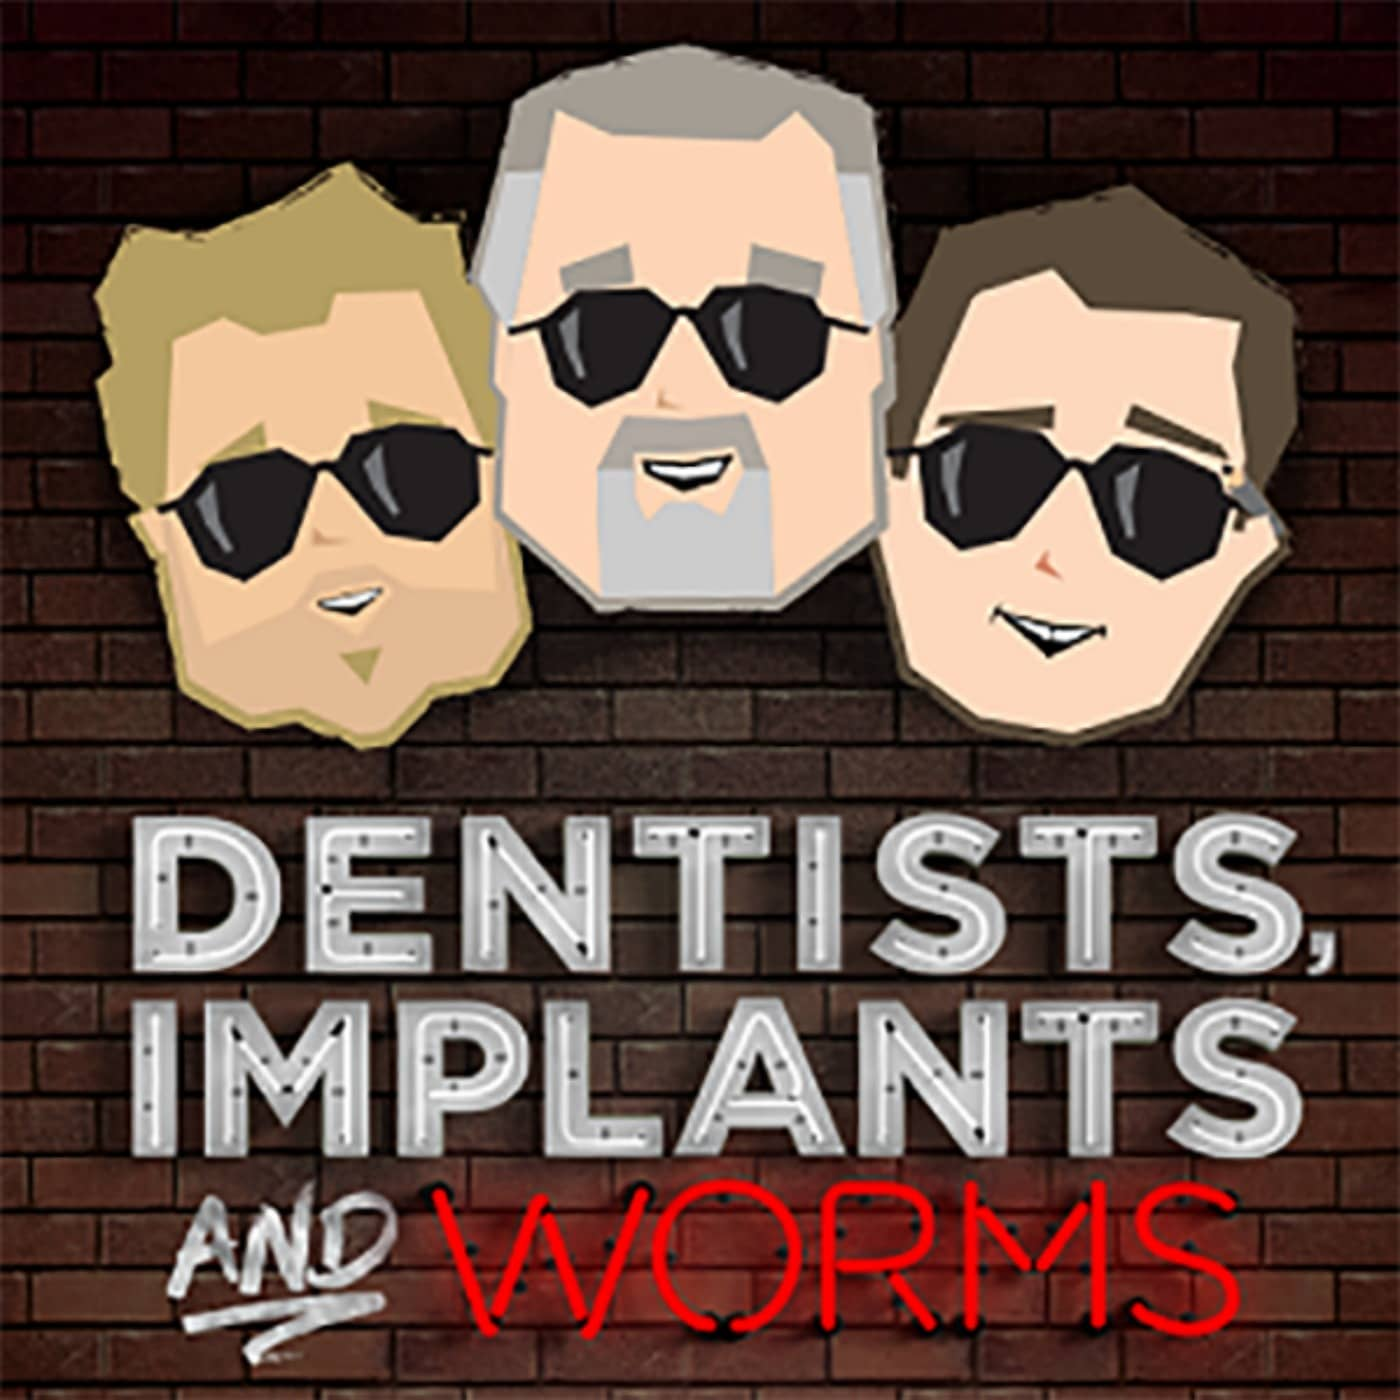 dentist implant and worms logo